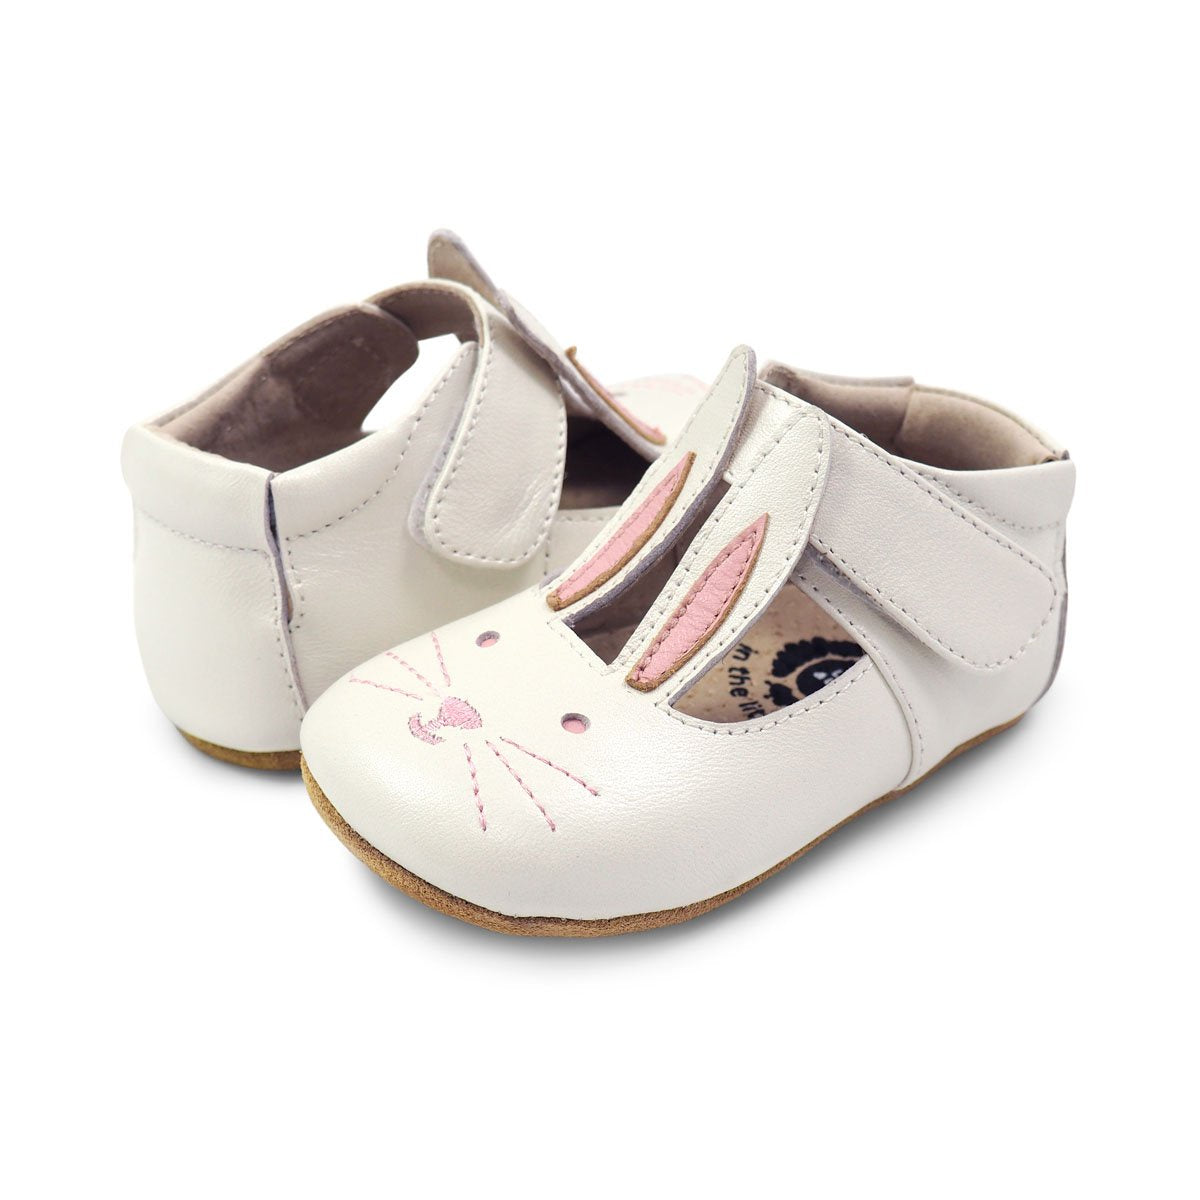 Molly Infant Shoes